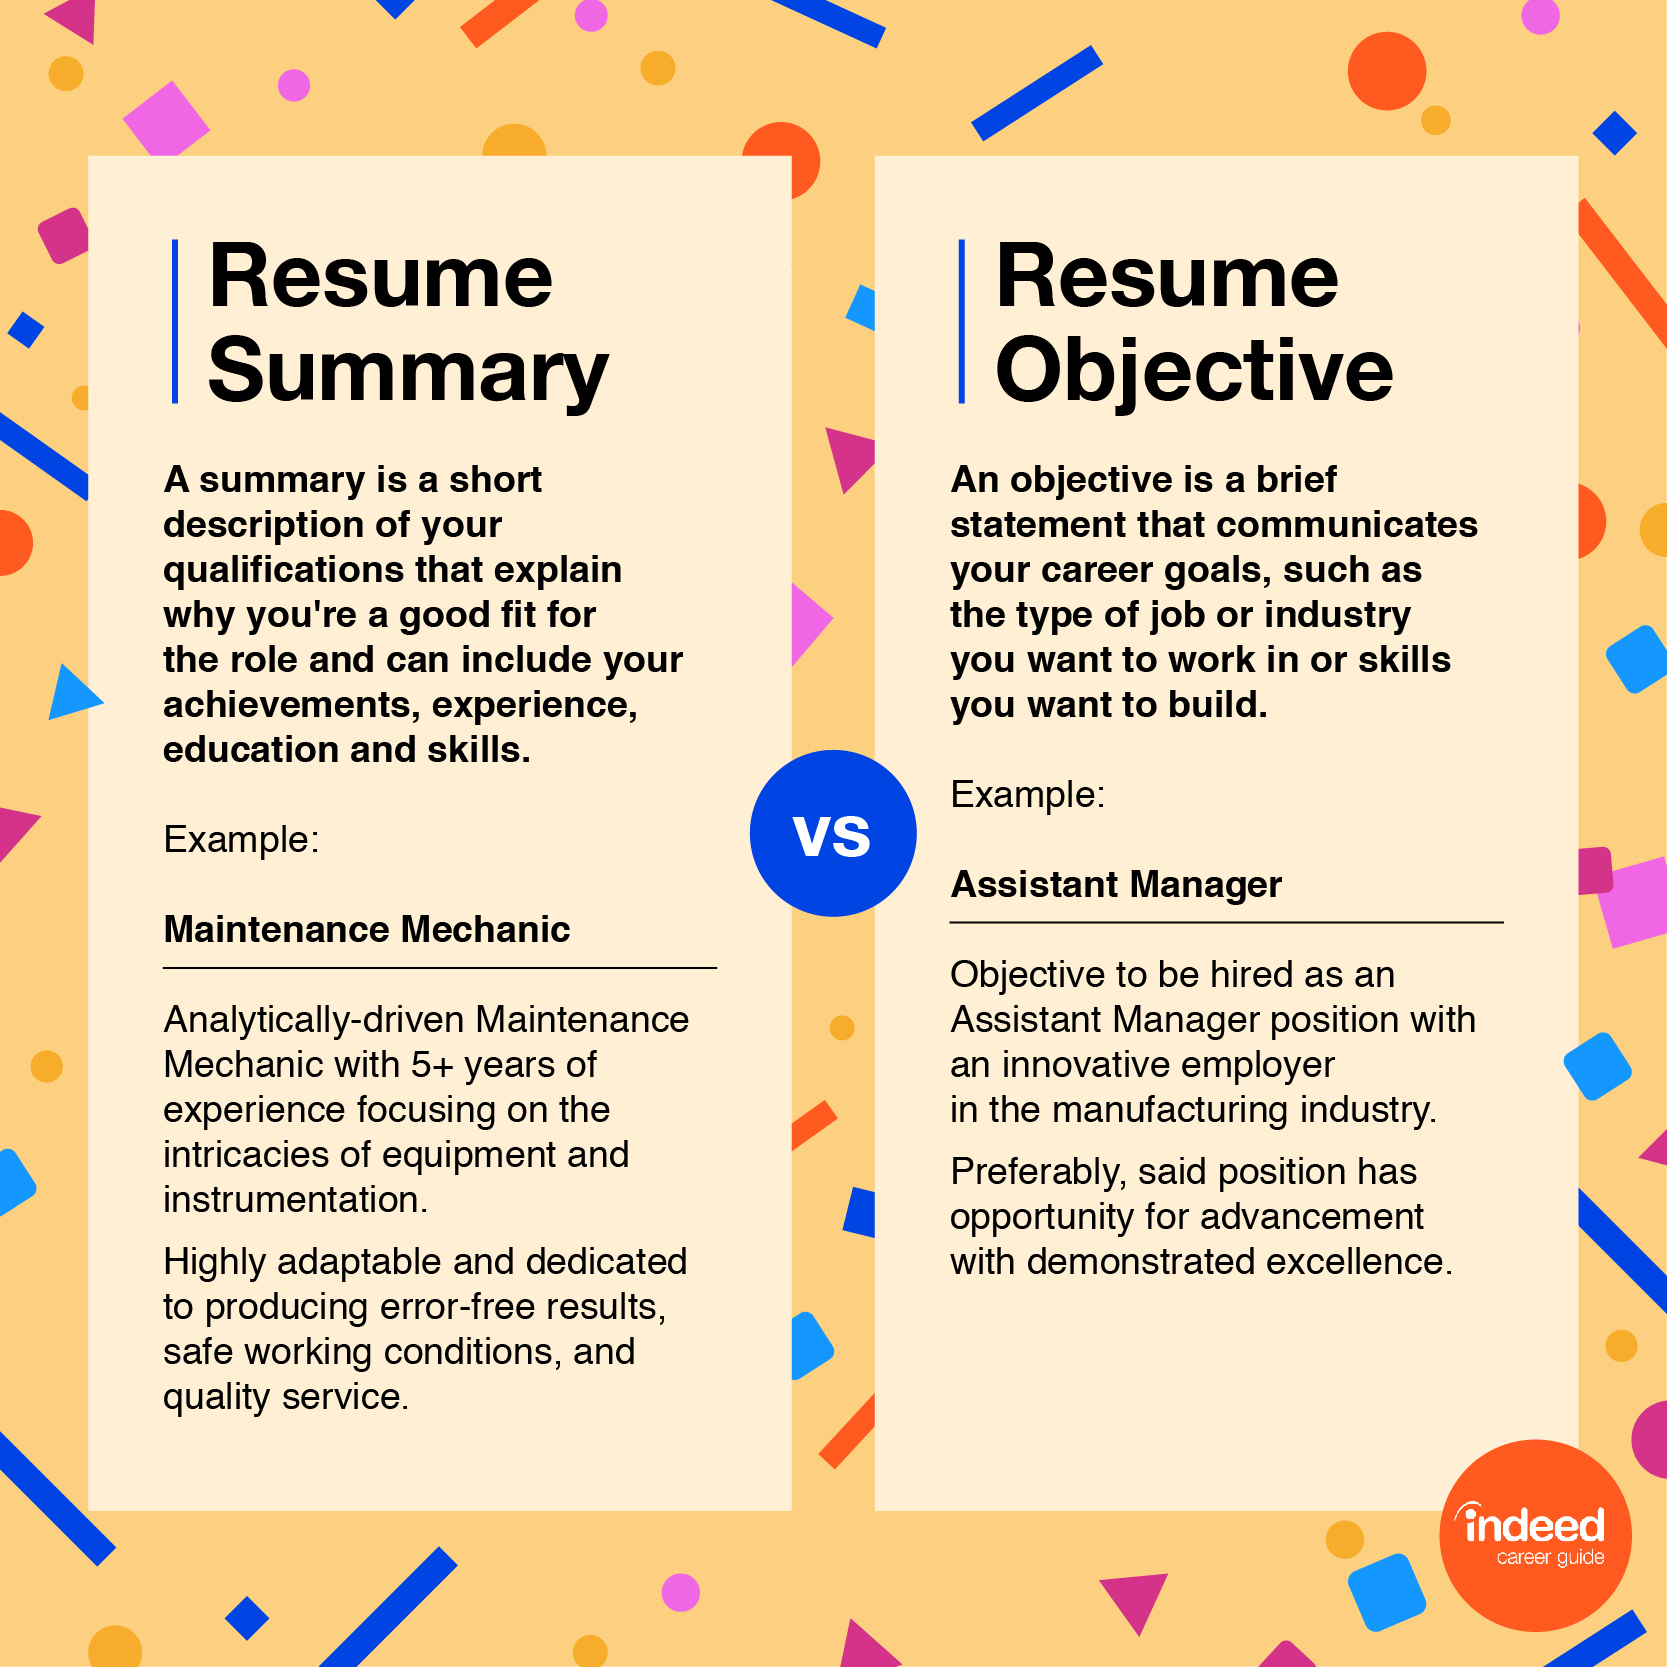 resume profile vs objective with examples indeed v4 career zone entry level certified Resume Resume Profile Vs Objective